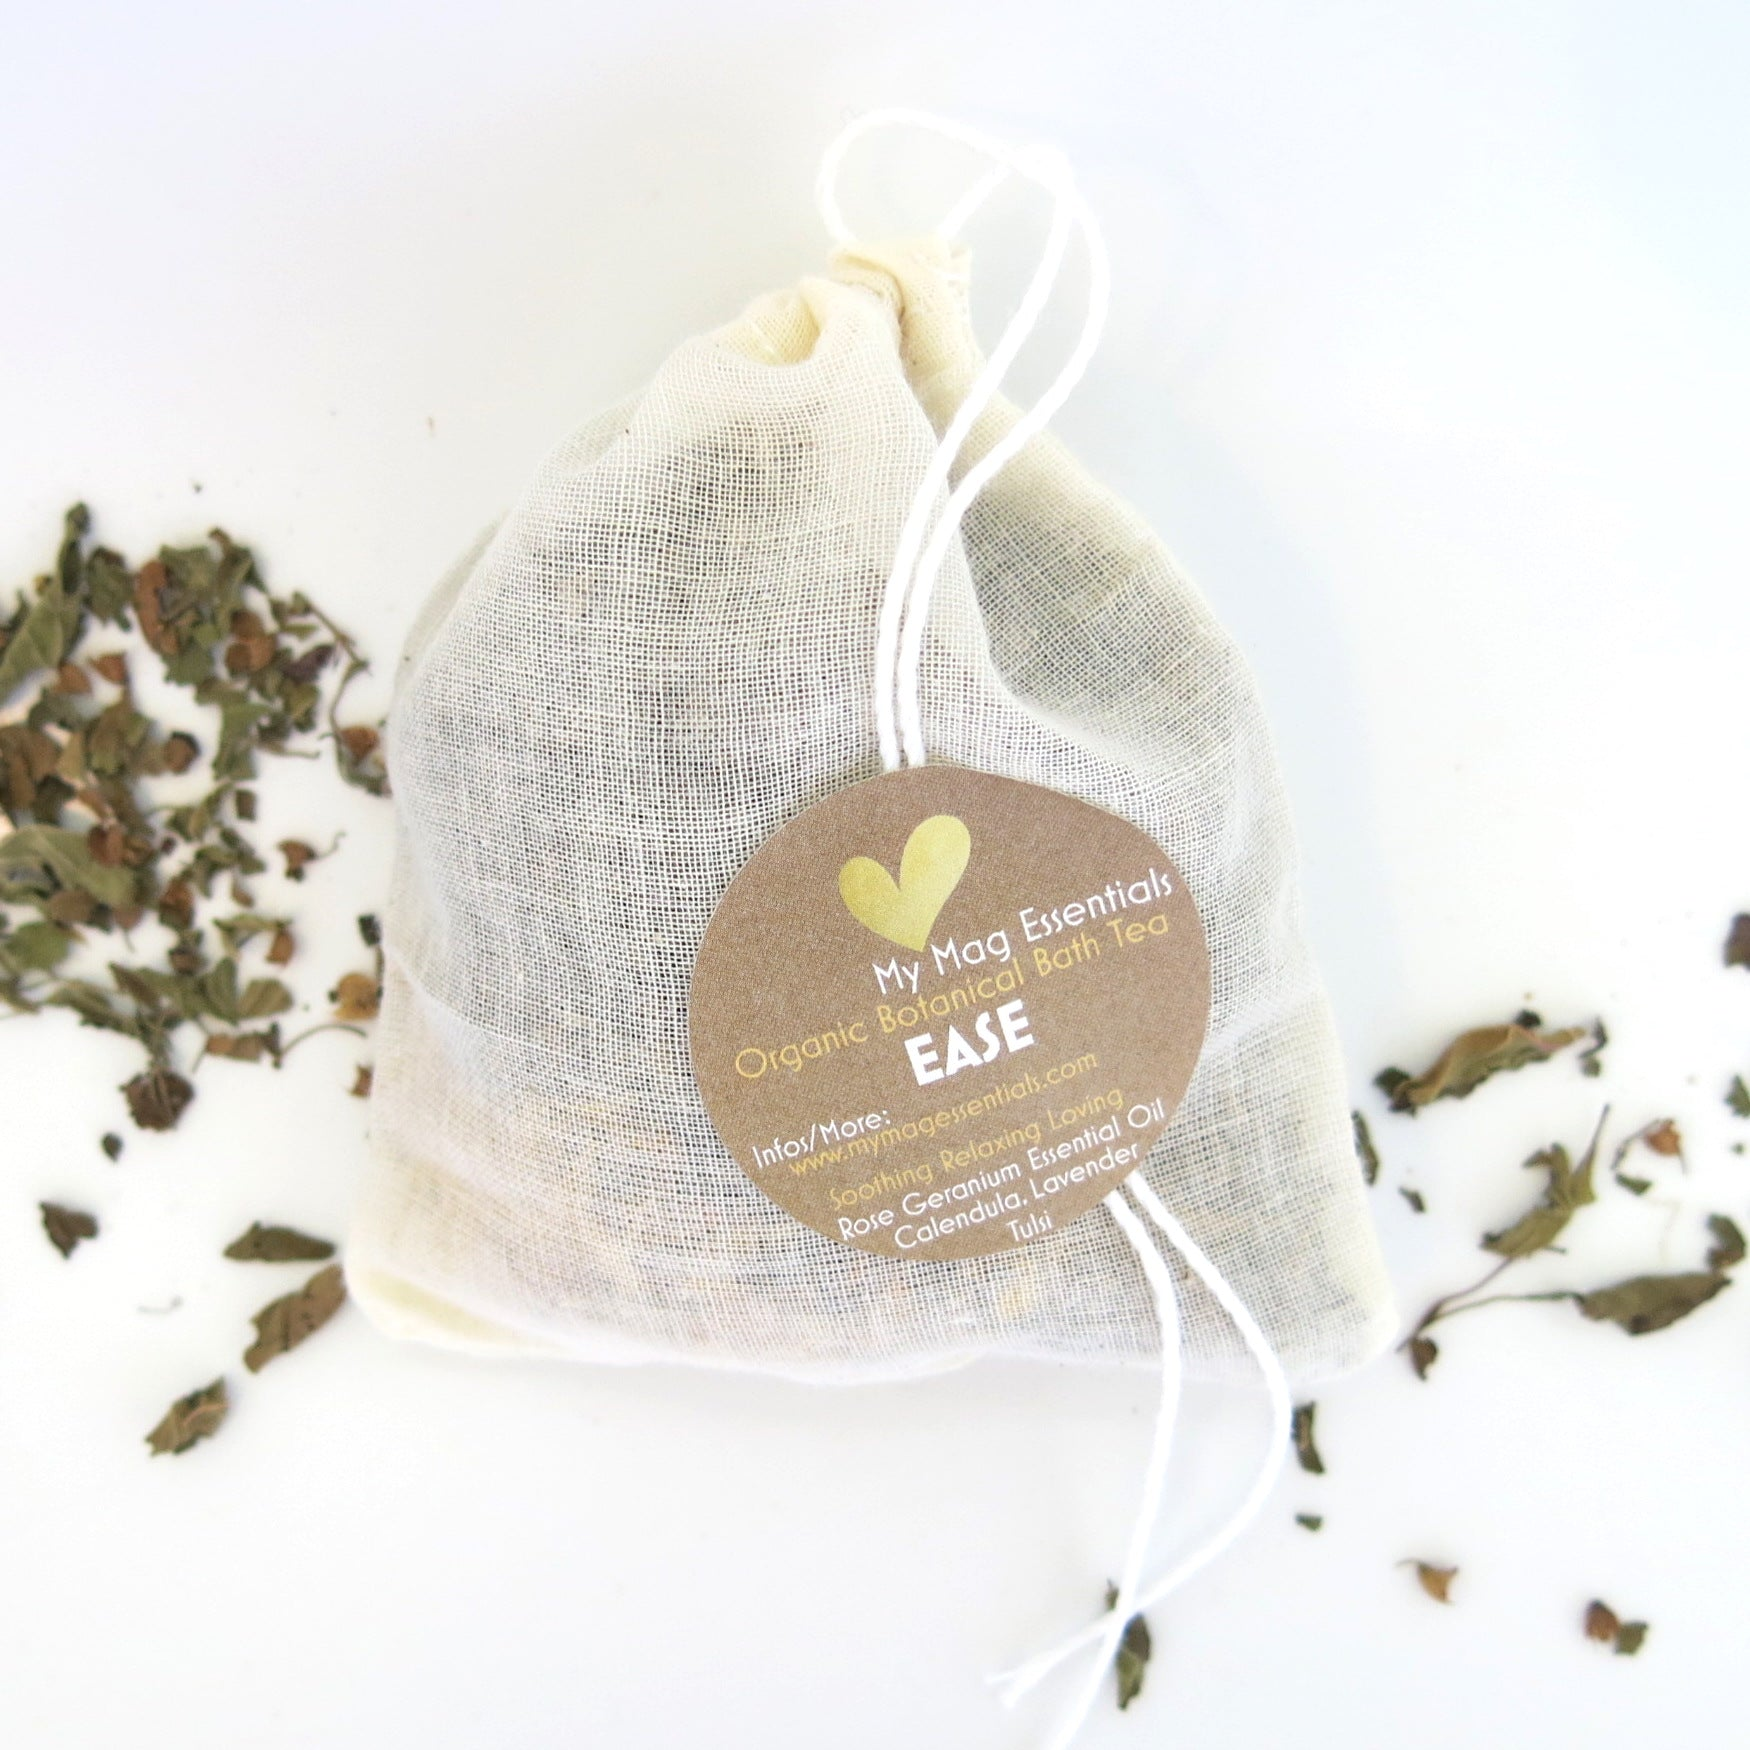 Reusable Organic Herbal Bath Tea infusion - EASE (pack of 5)